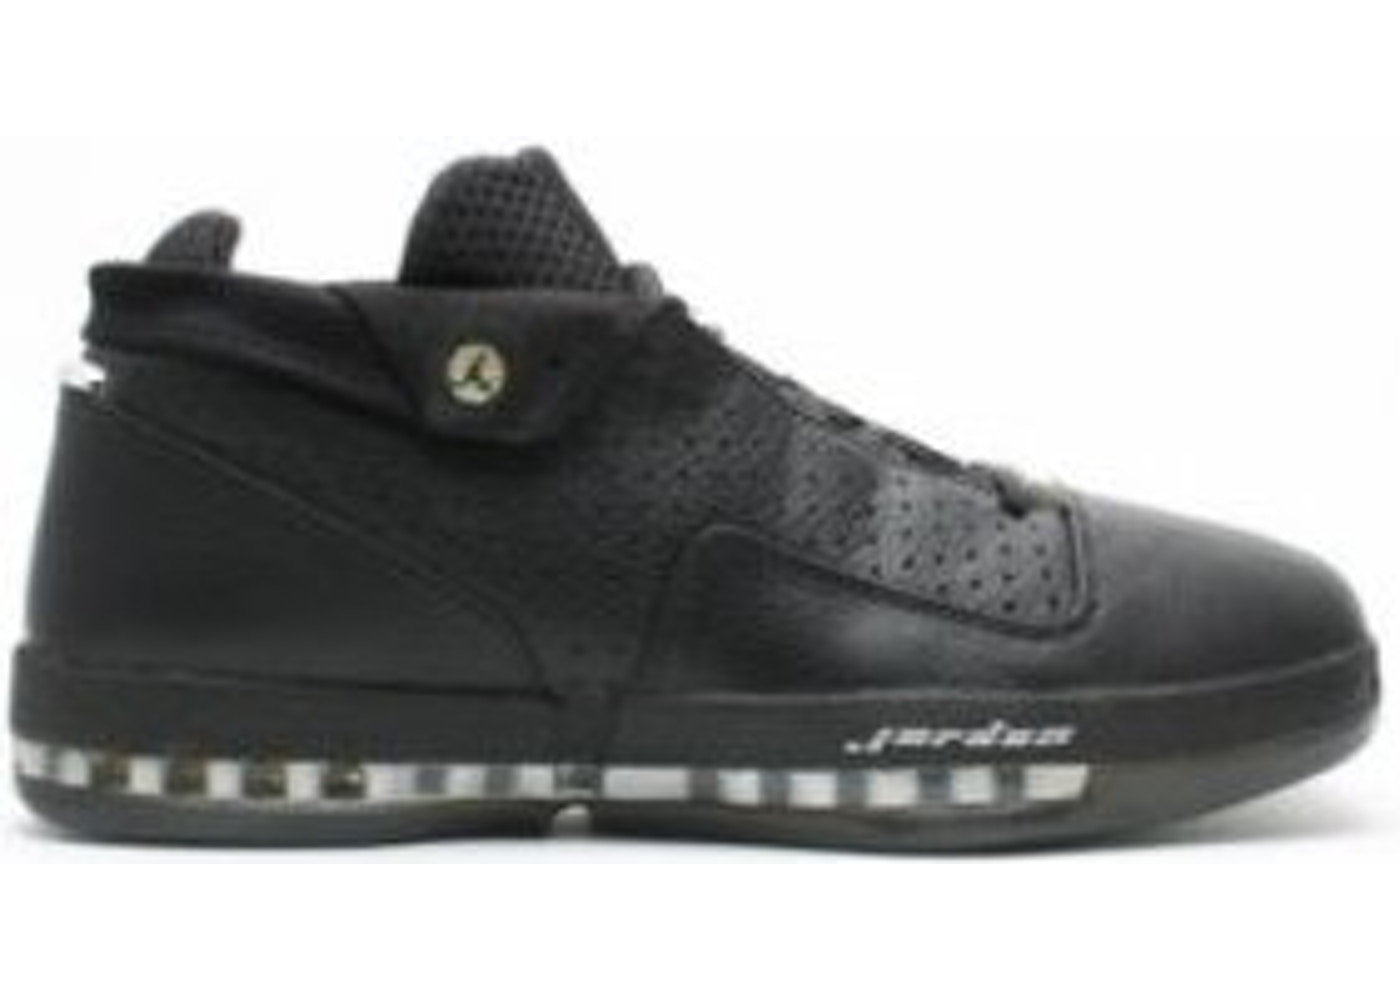 sneakers for cheap 4efe2 cf8b3 Jordan 16 OG Low Black / Chrome